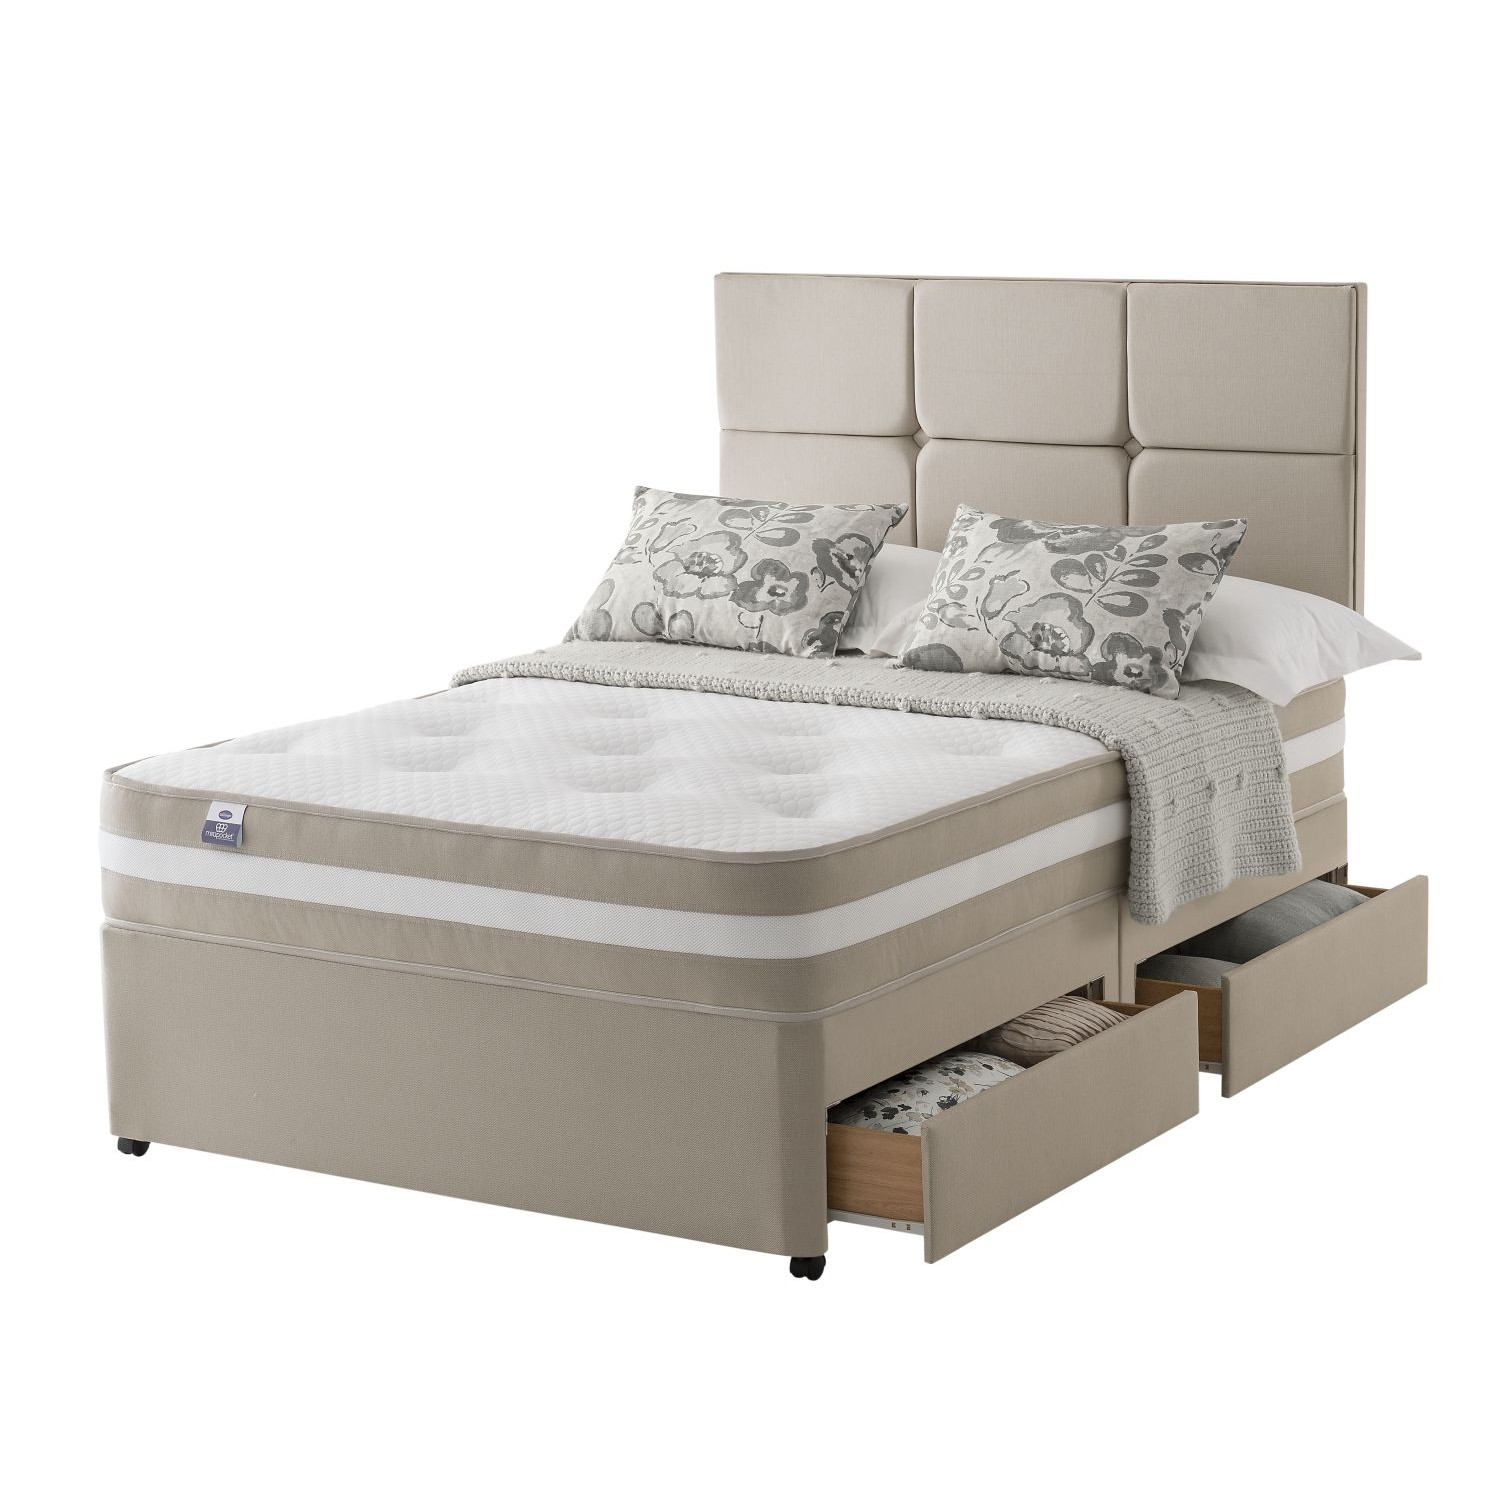 Silentnight georgia platform top 2 2 drawer divan set small for Small double divan set